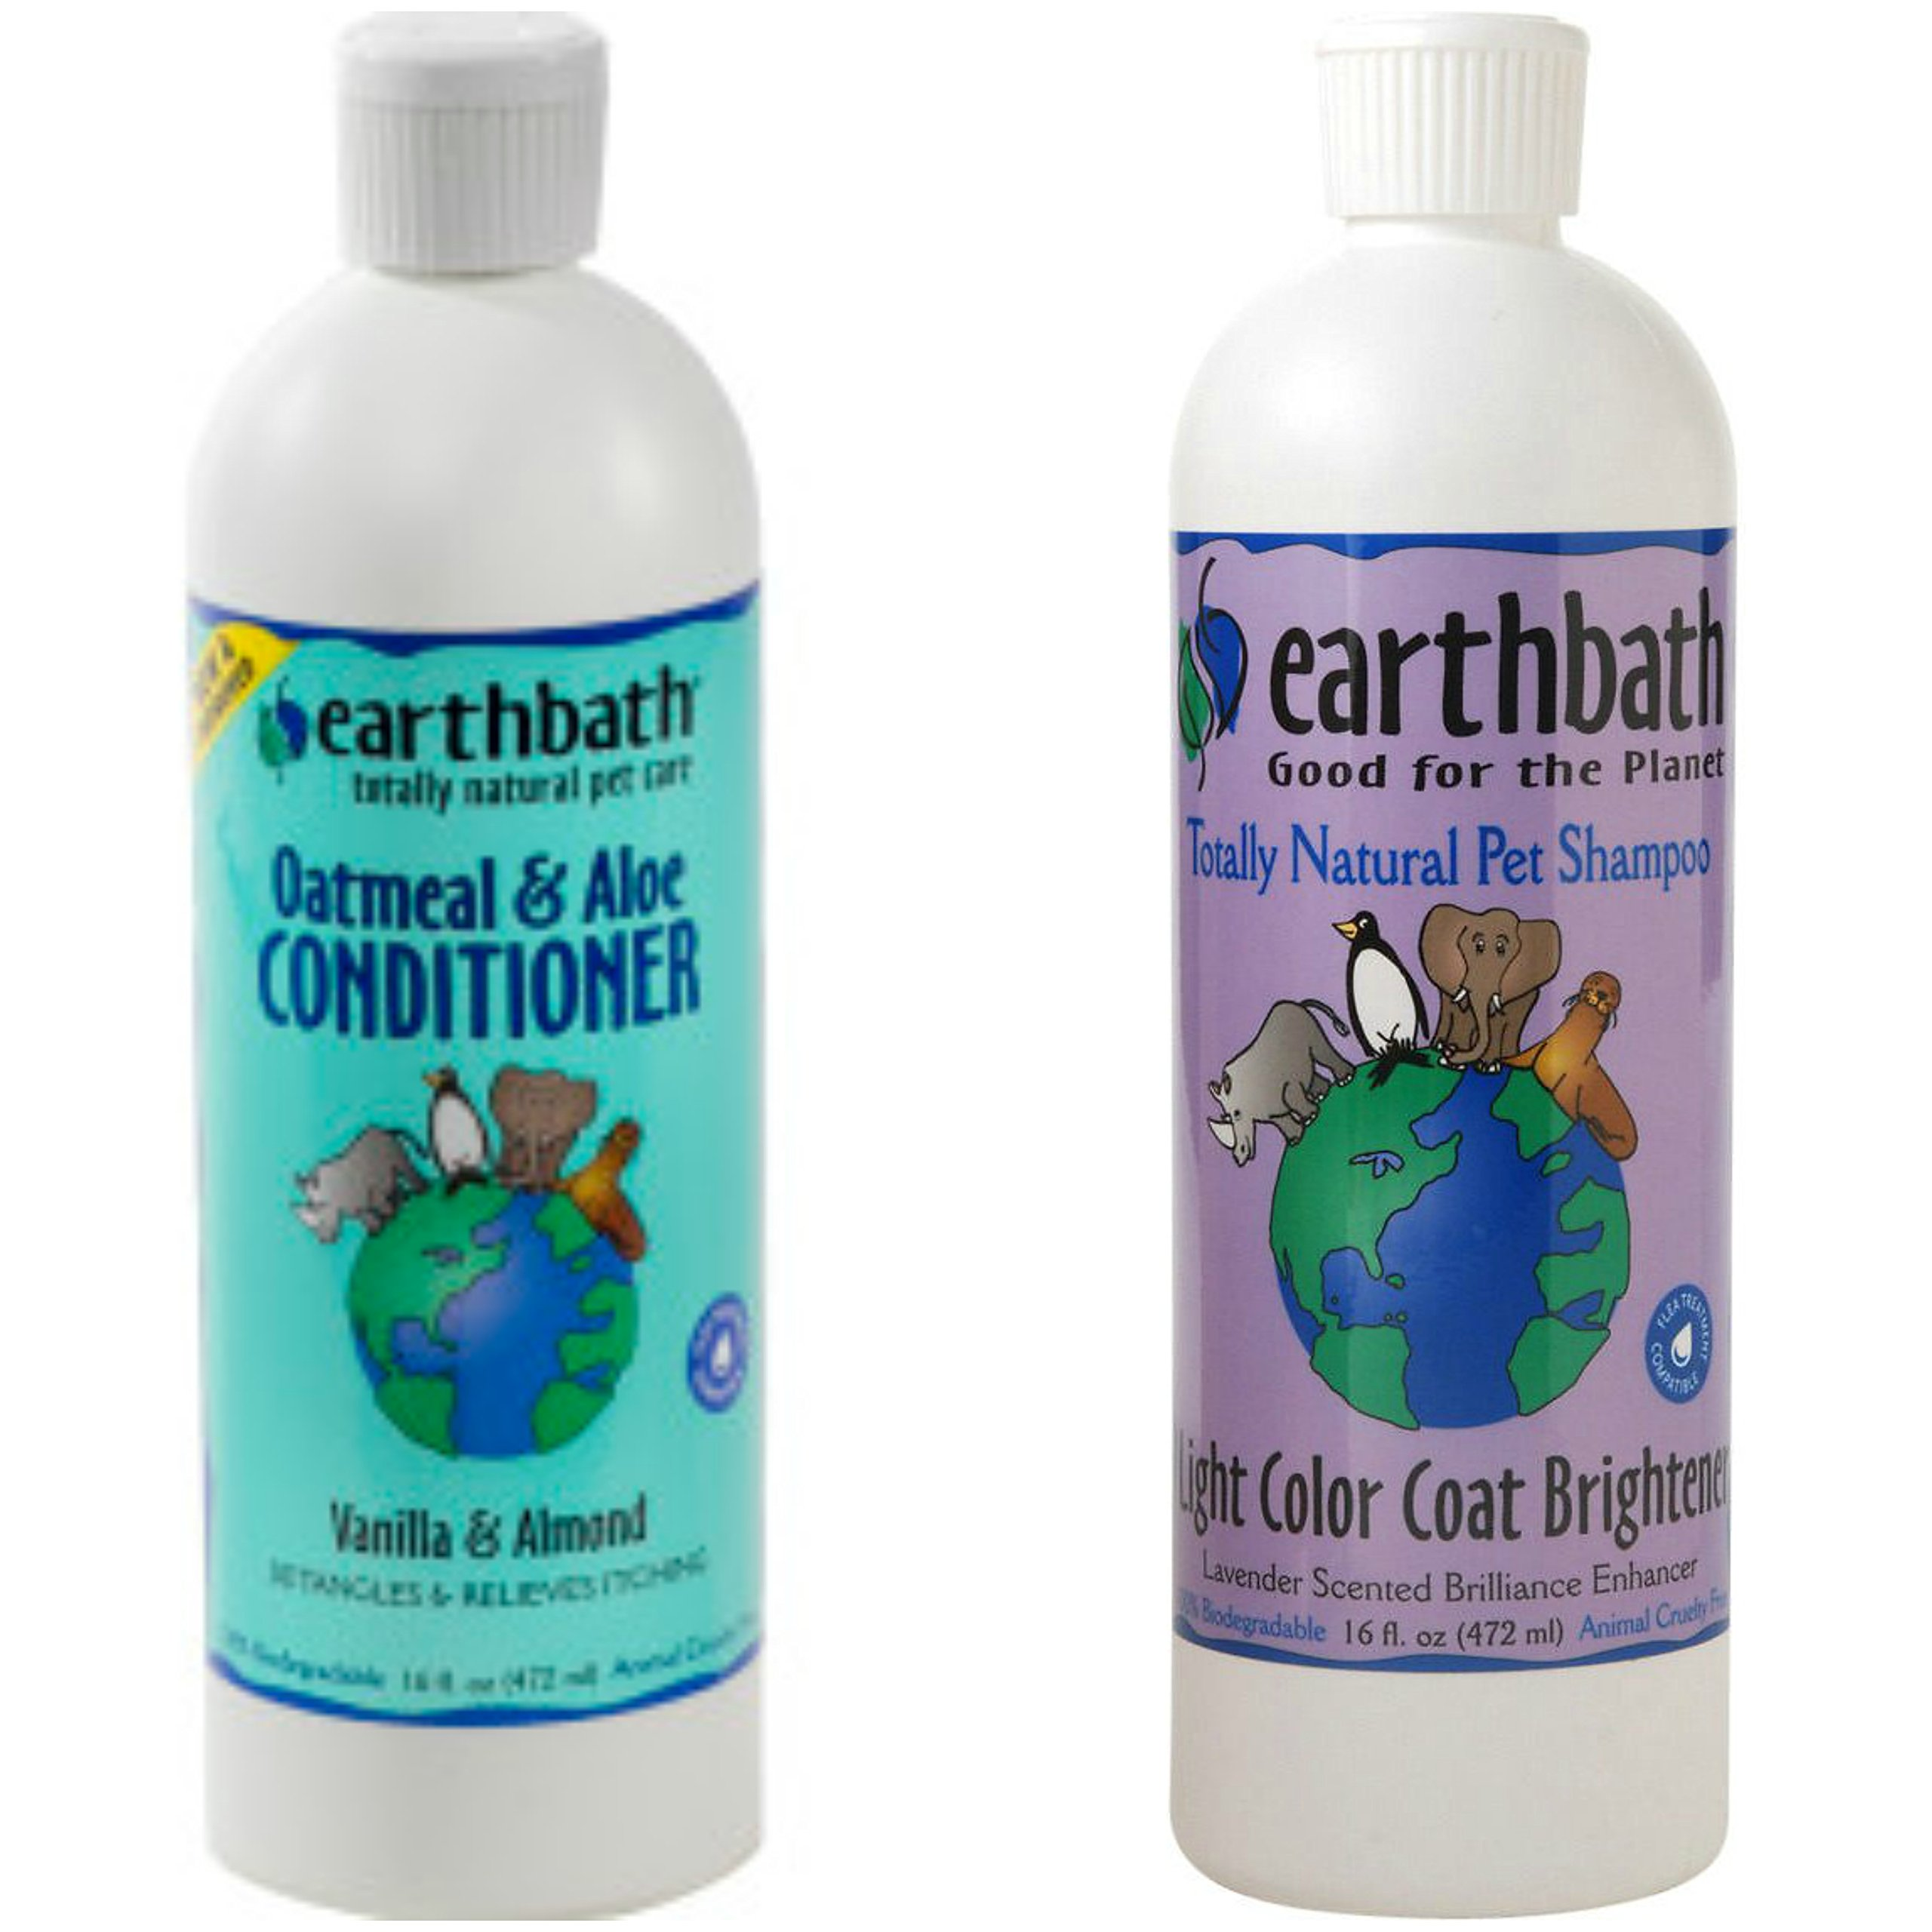 Earthbath Light Color Coat Brightener Shampoo for Dogs and Cats, Lavender Scent, 16 oz, and Earthbath Oatmeal and Aloe Conditioner for Dogs and Cats, Vanilla and Almond Scent,16 oz by Earthbath